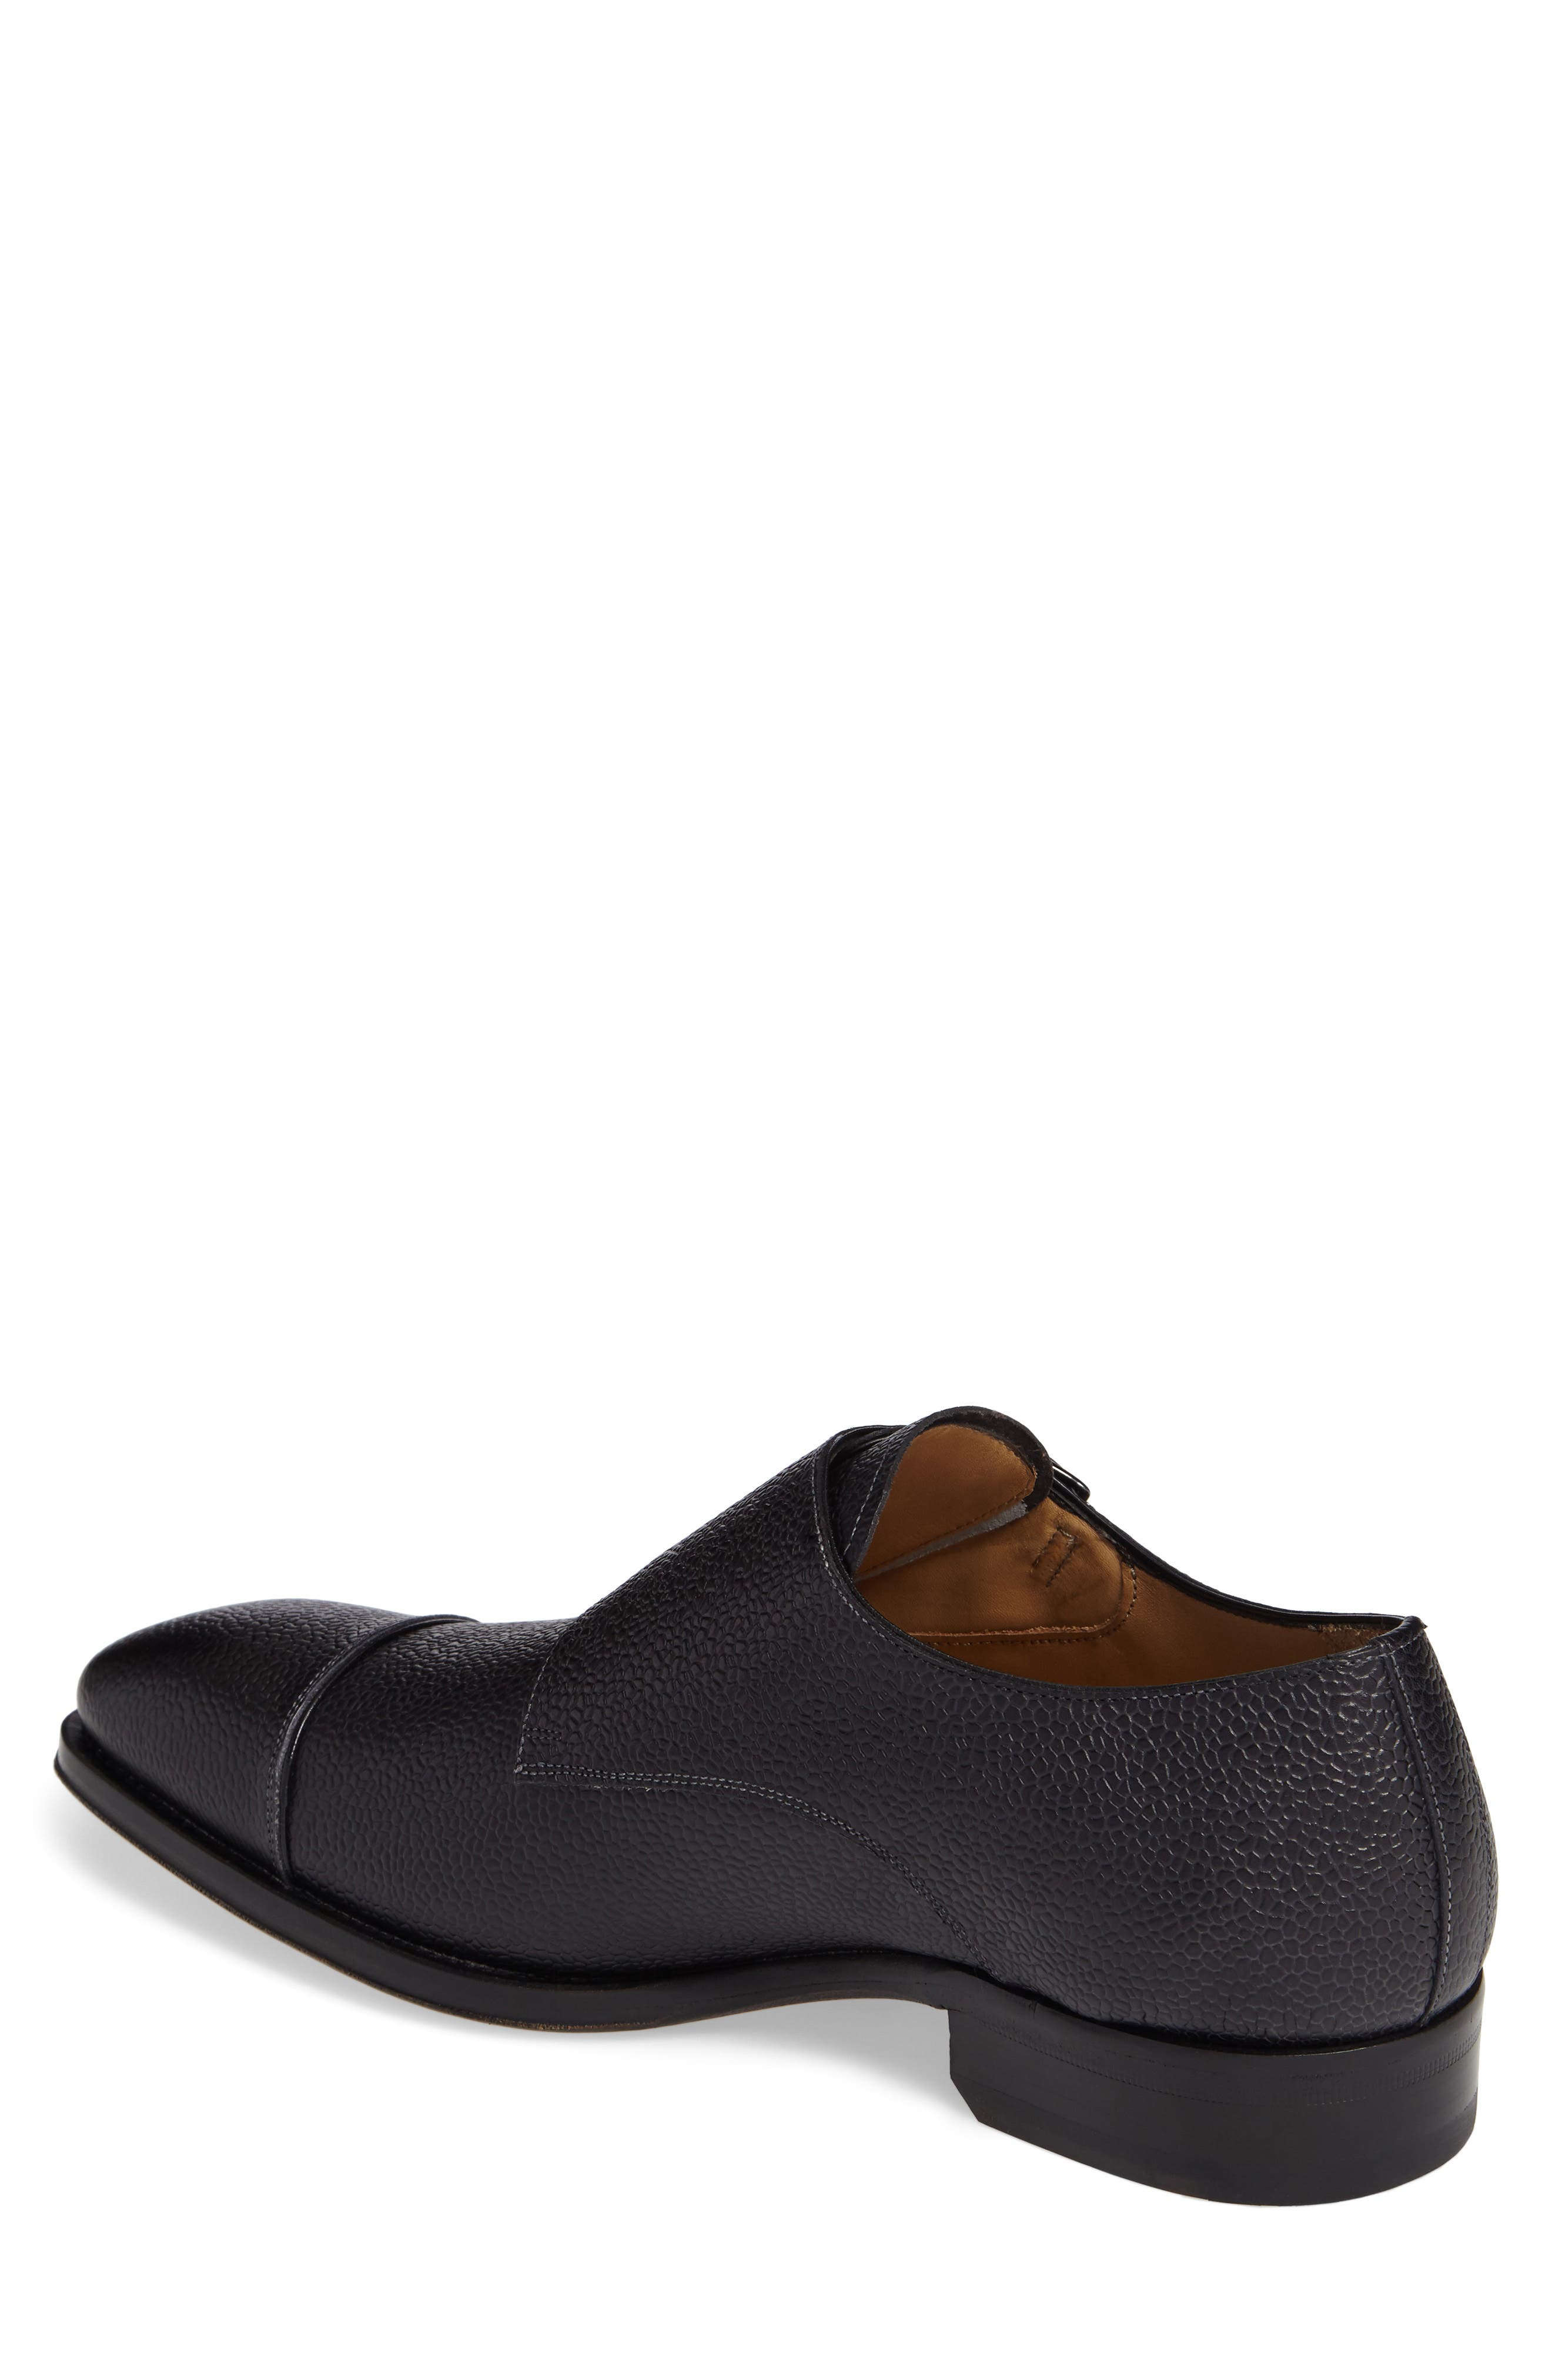 524d9c56e1f Men s Mezlan Loafers  Sale